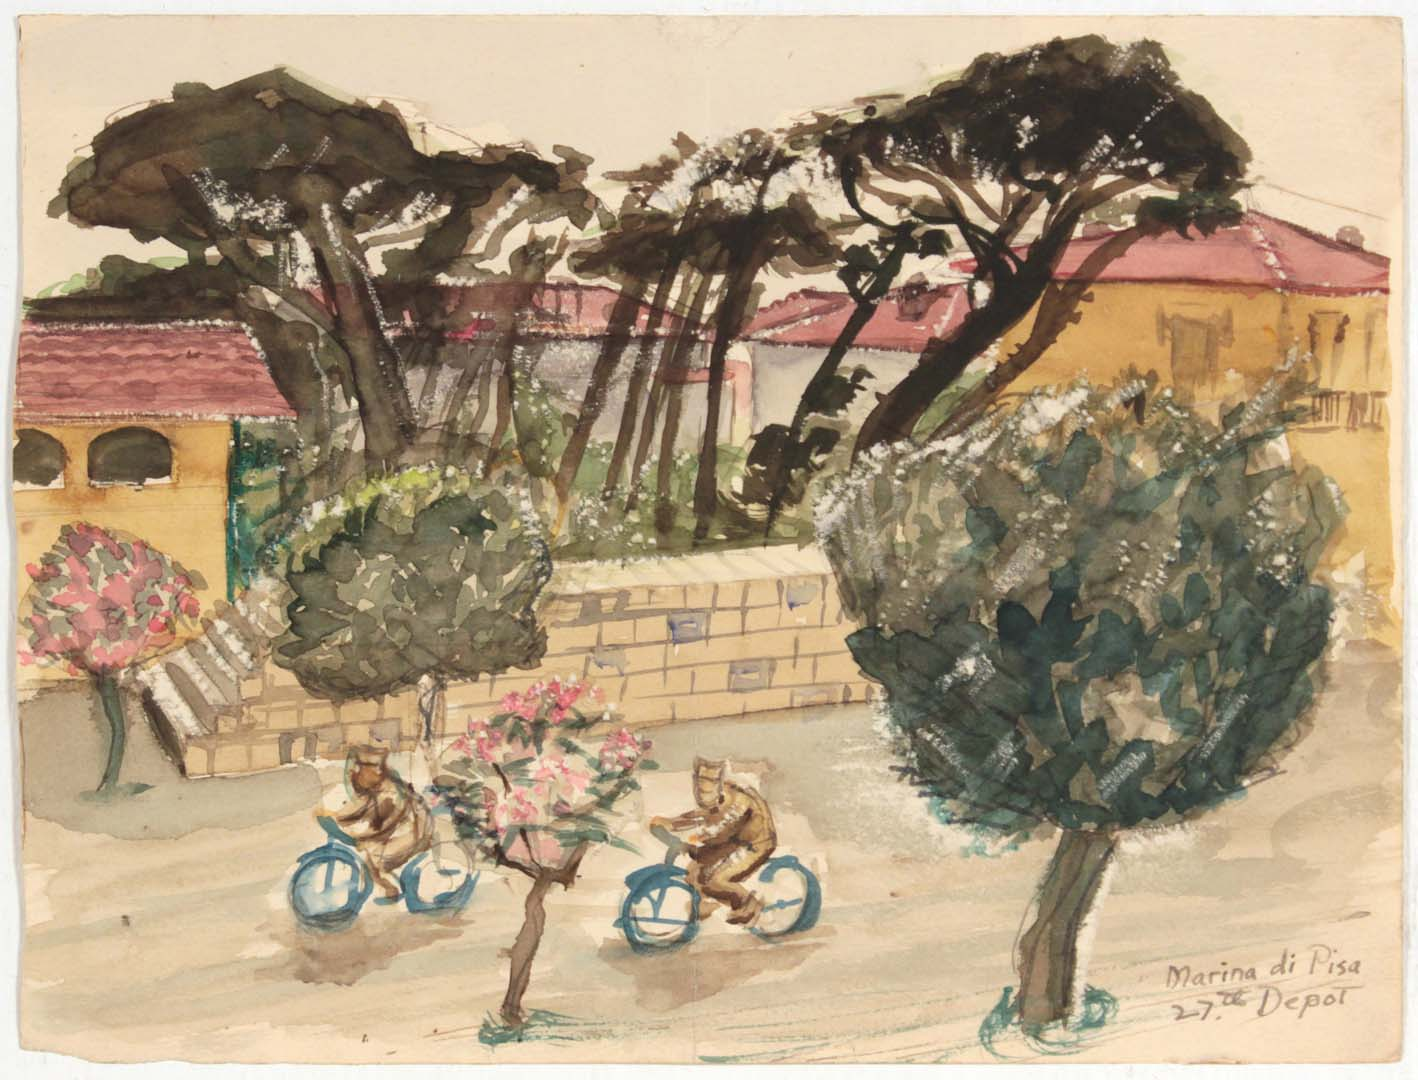 1945 Marina Di Pisa IV 27th Depot Watercolor 6.9375 x 9.125